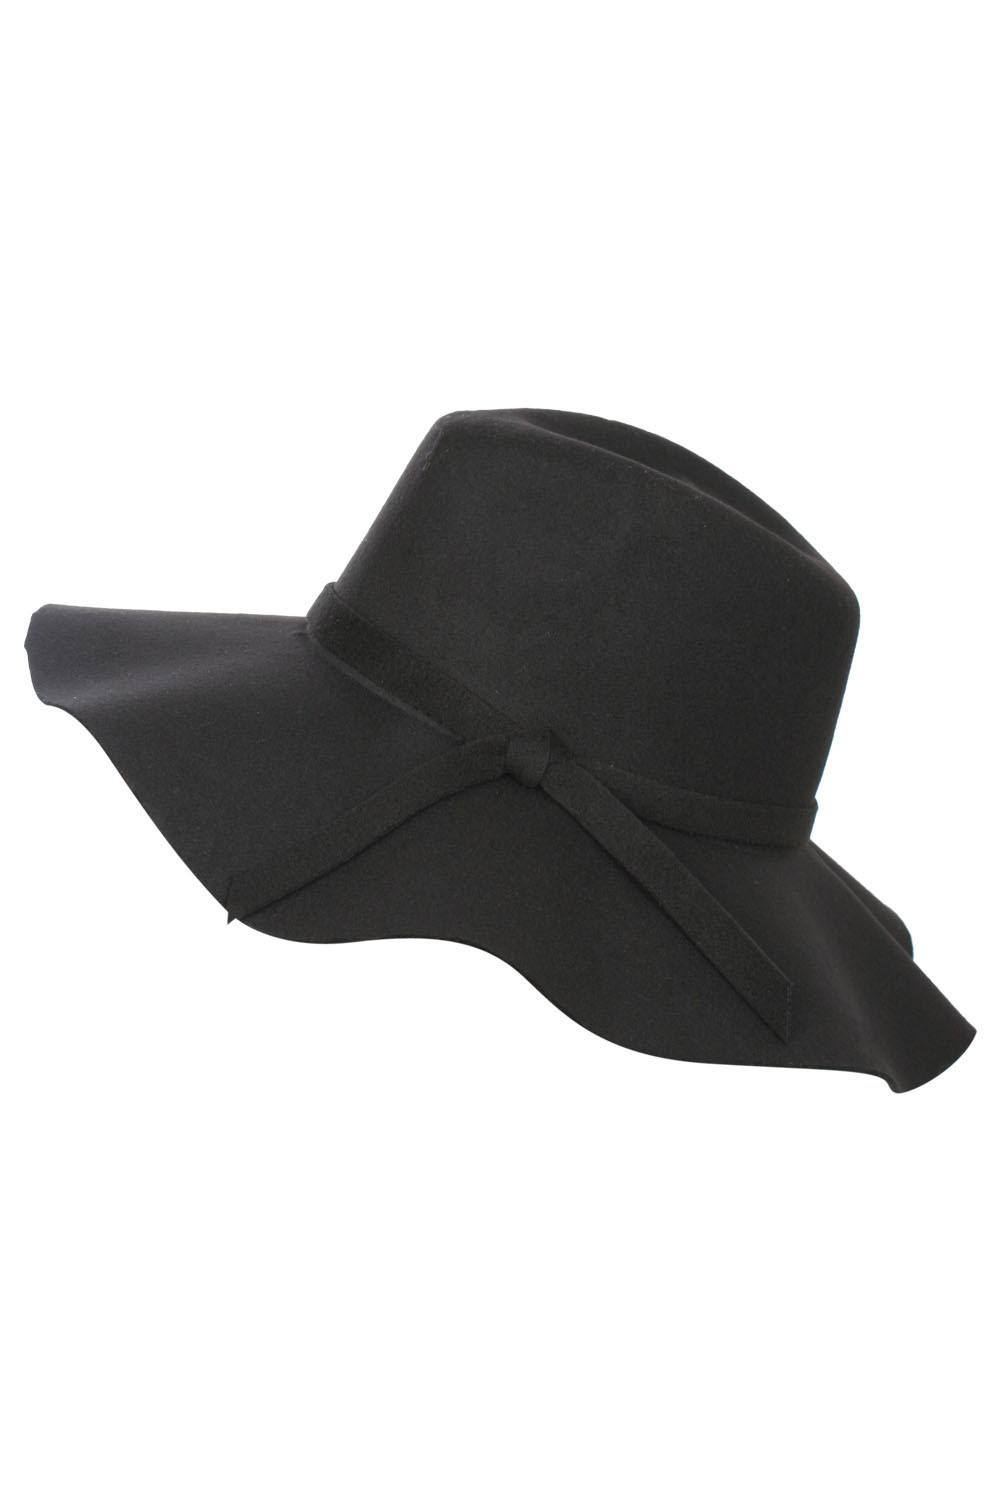 Wide Brim Fedora Hat in Black FRONT